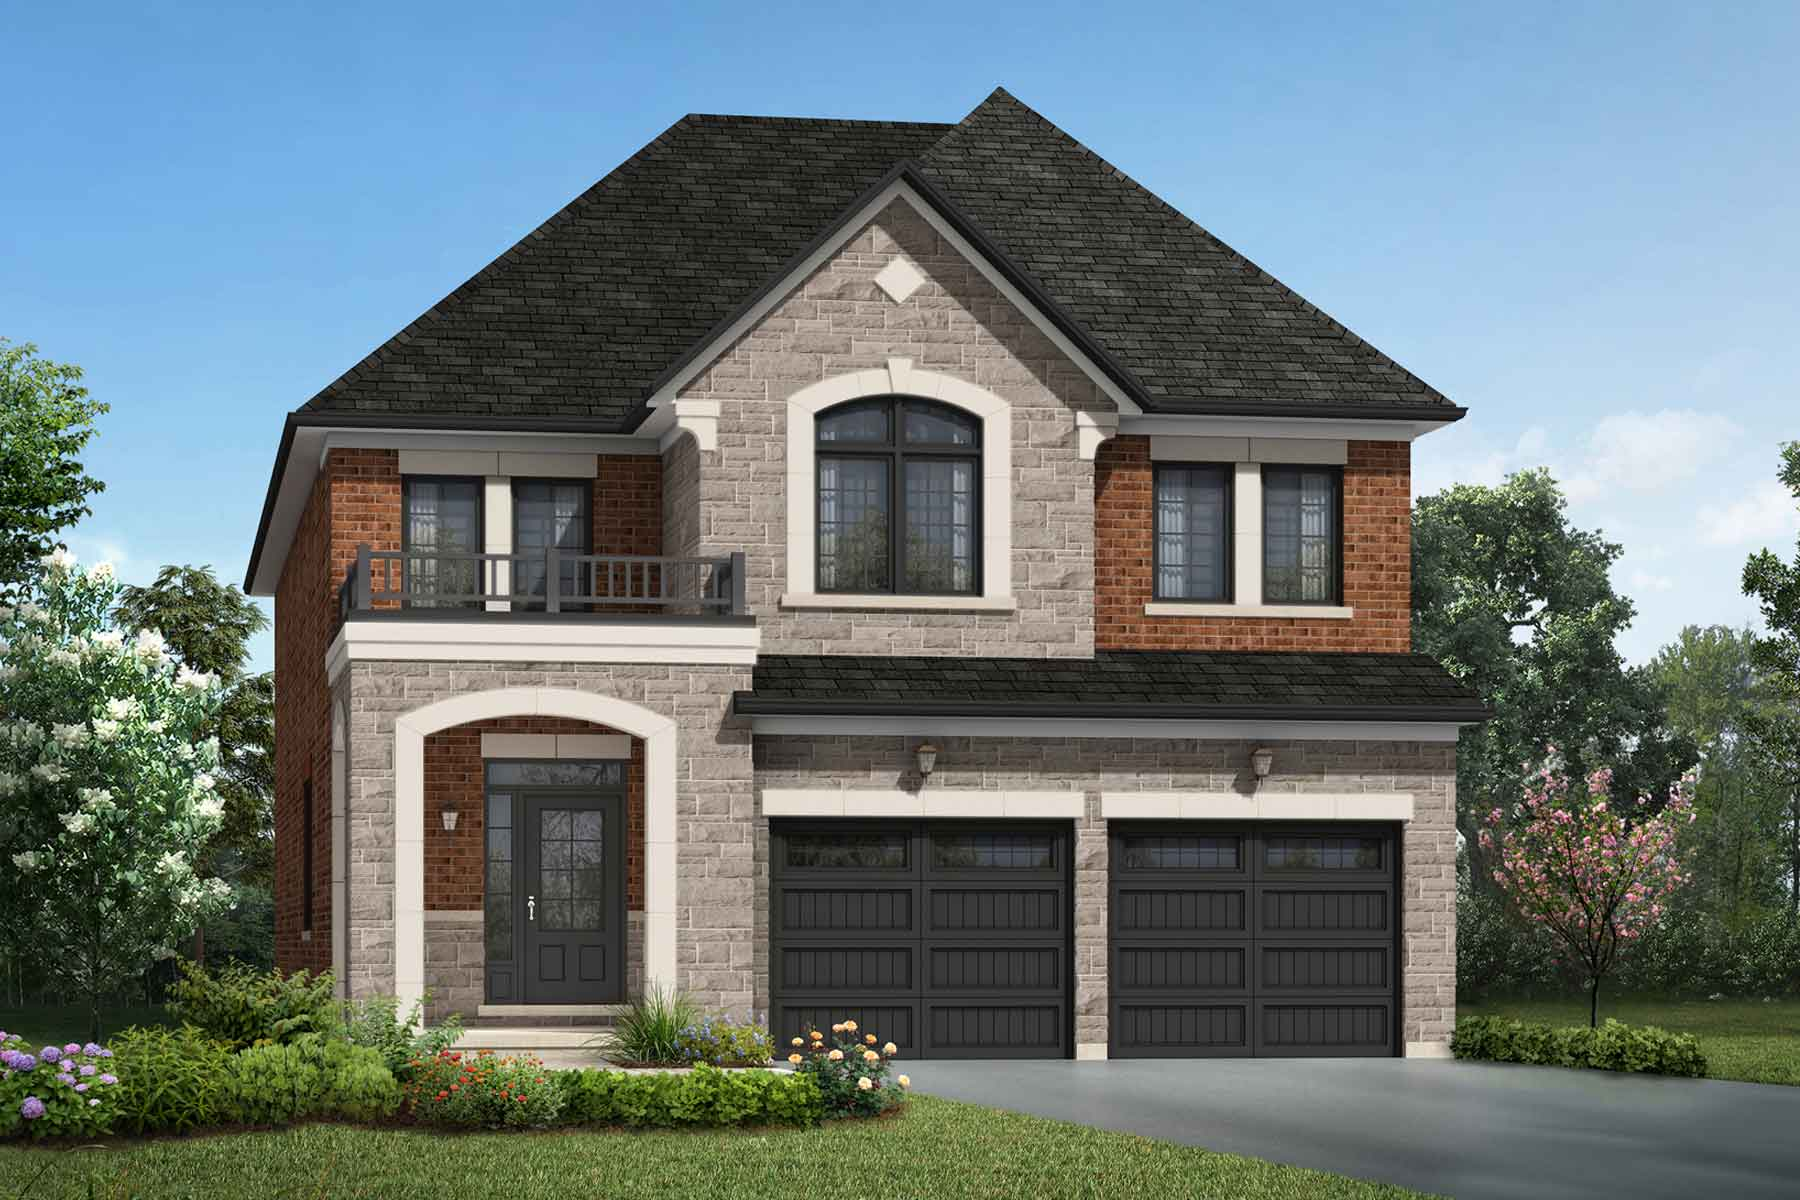 Greenfield Plan englishmanor_seatonwhitevale_brockridge_main at Seaton Whitevale in Pickering Ontario by Mattamy Homes